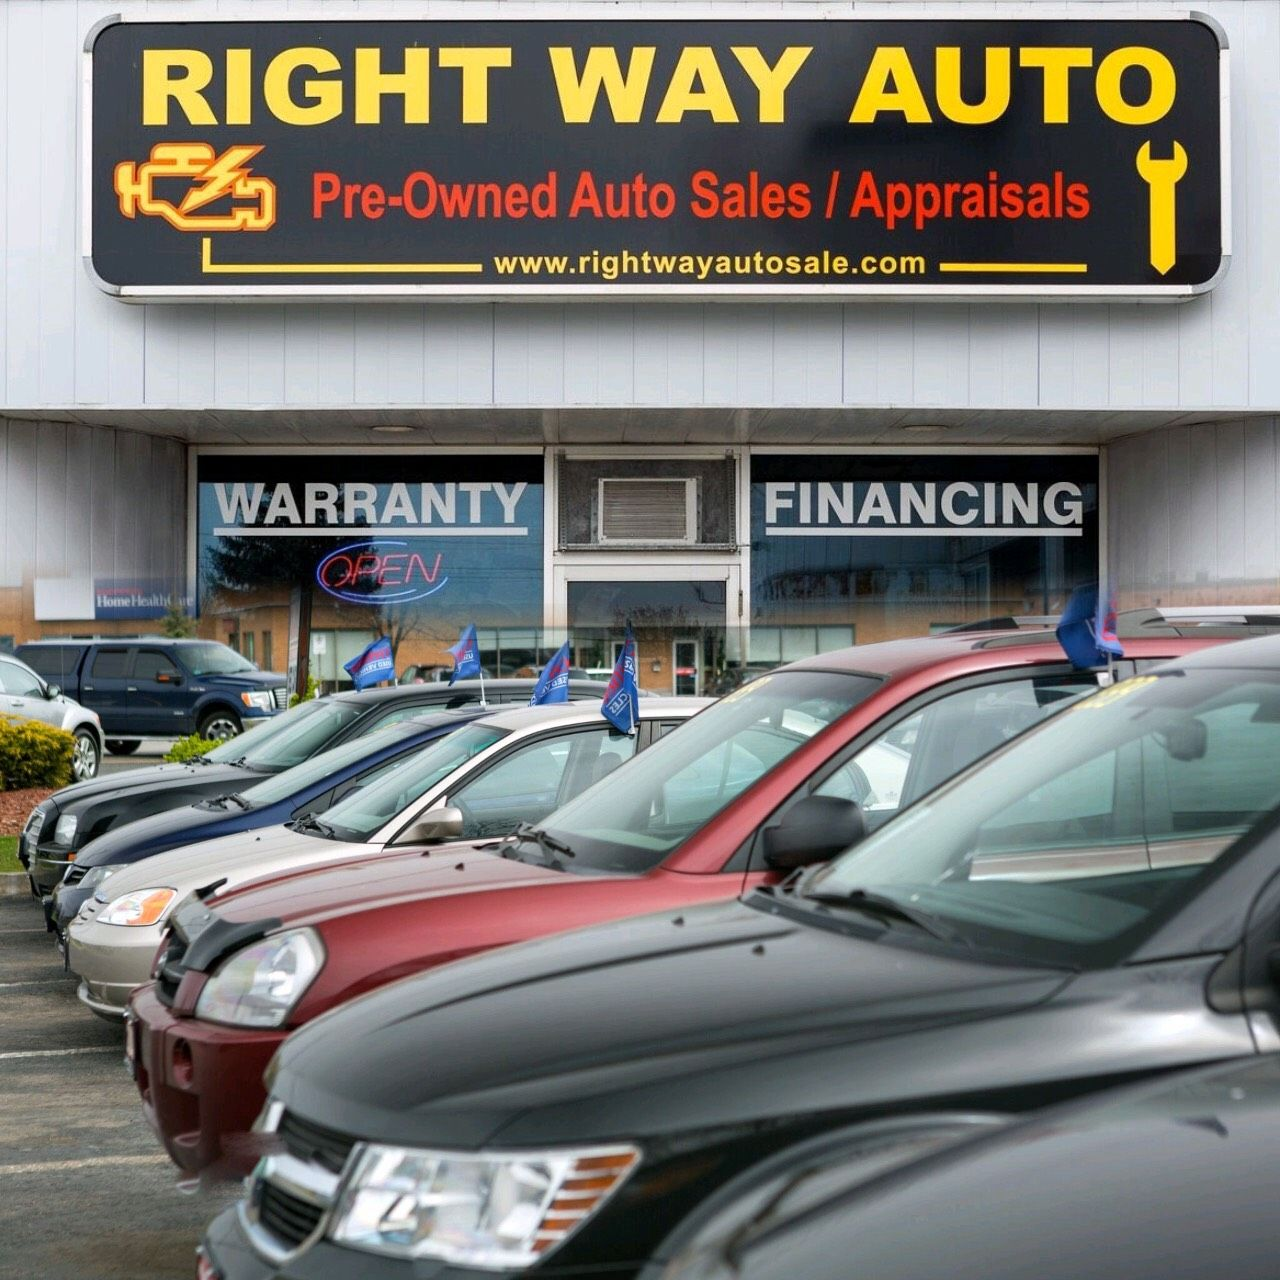 Rightway Auto Sales >> Financing Our Department Right Way Auto Sales Offers A